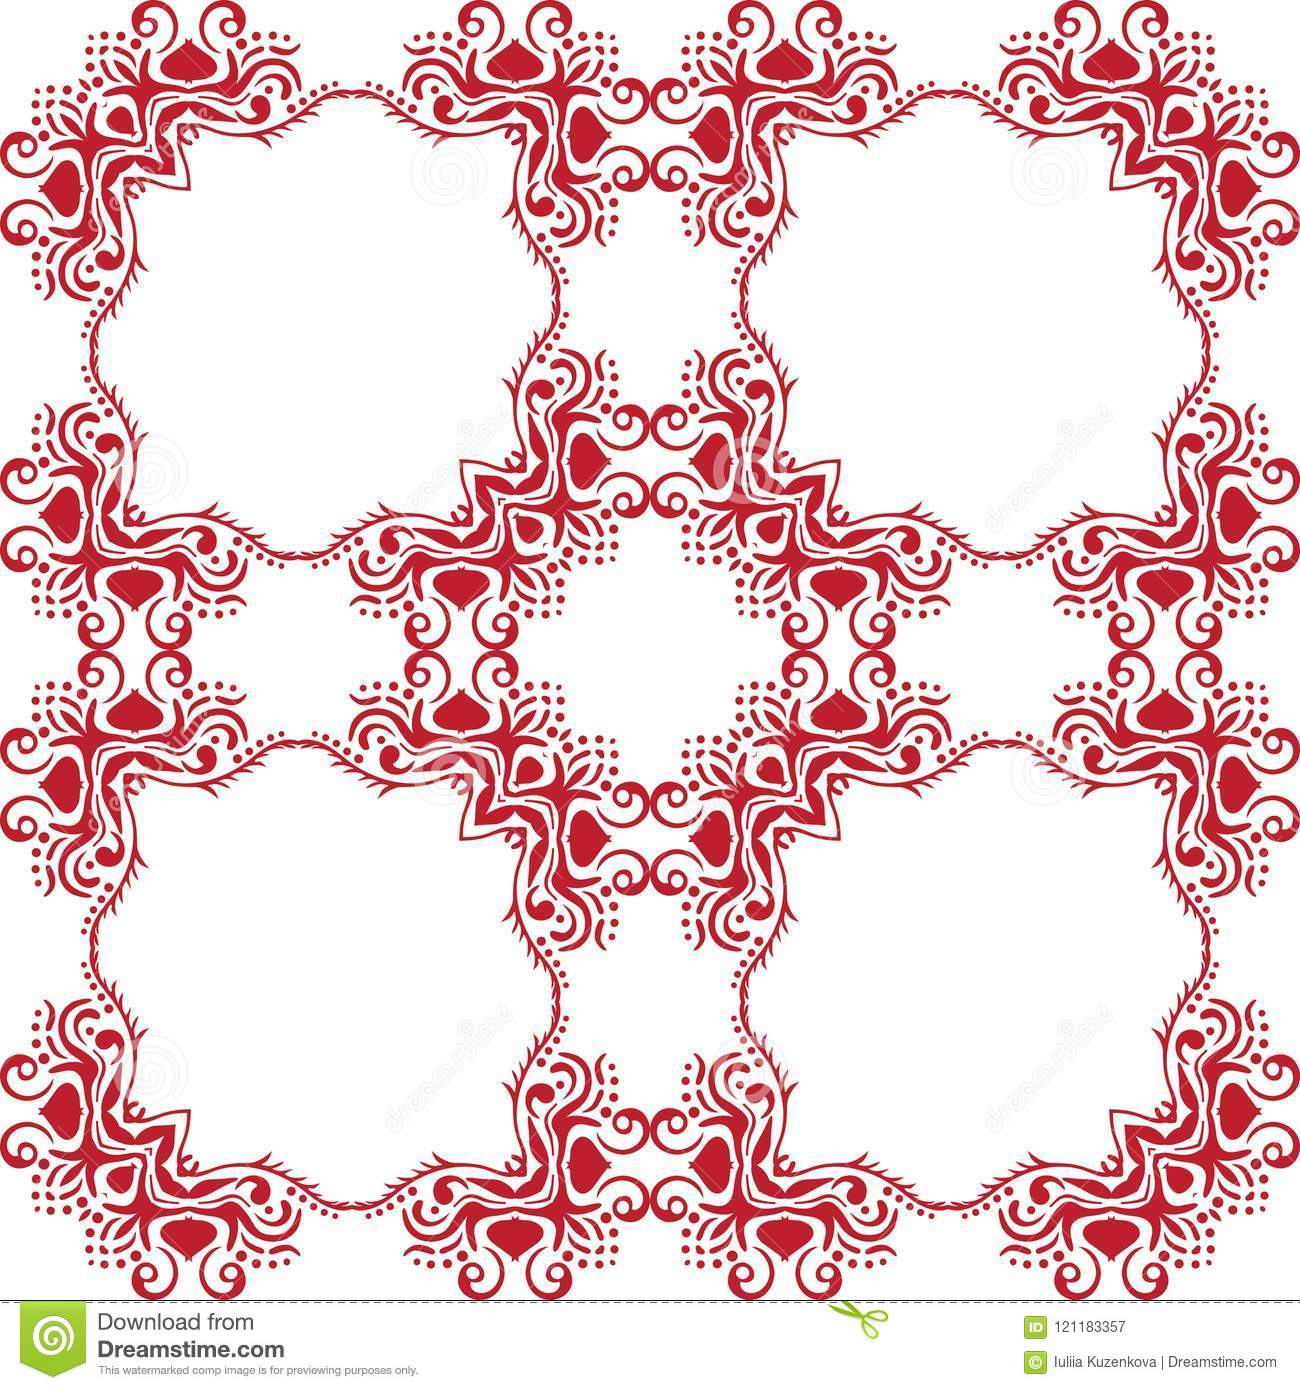 Seamless abstract floral pattern. White vector background. Geometric leaf ornament. Graphic modern pattern